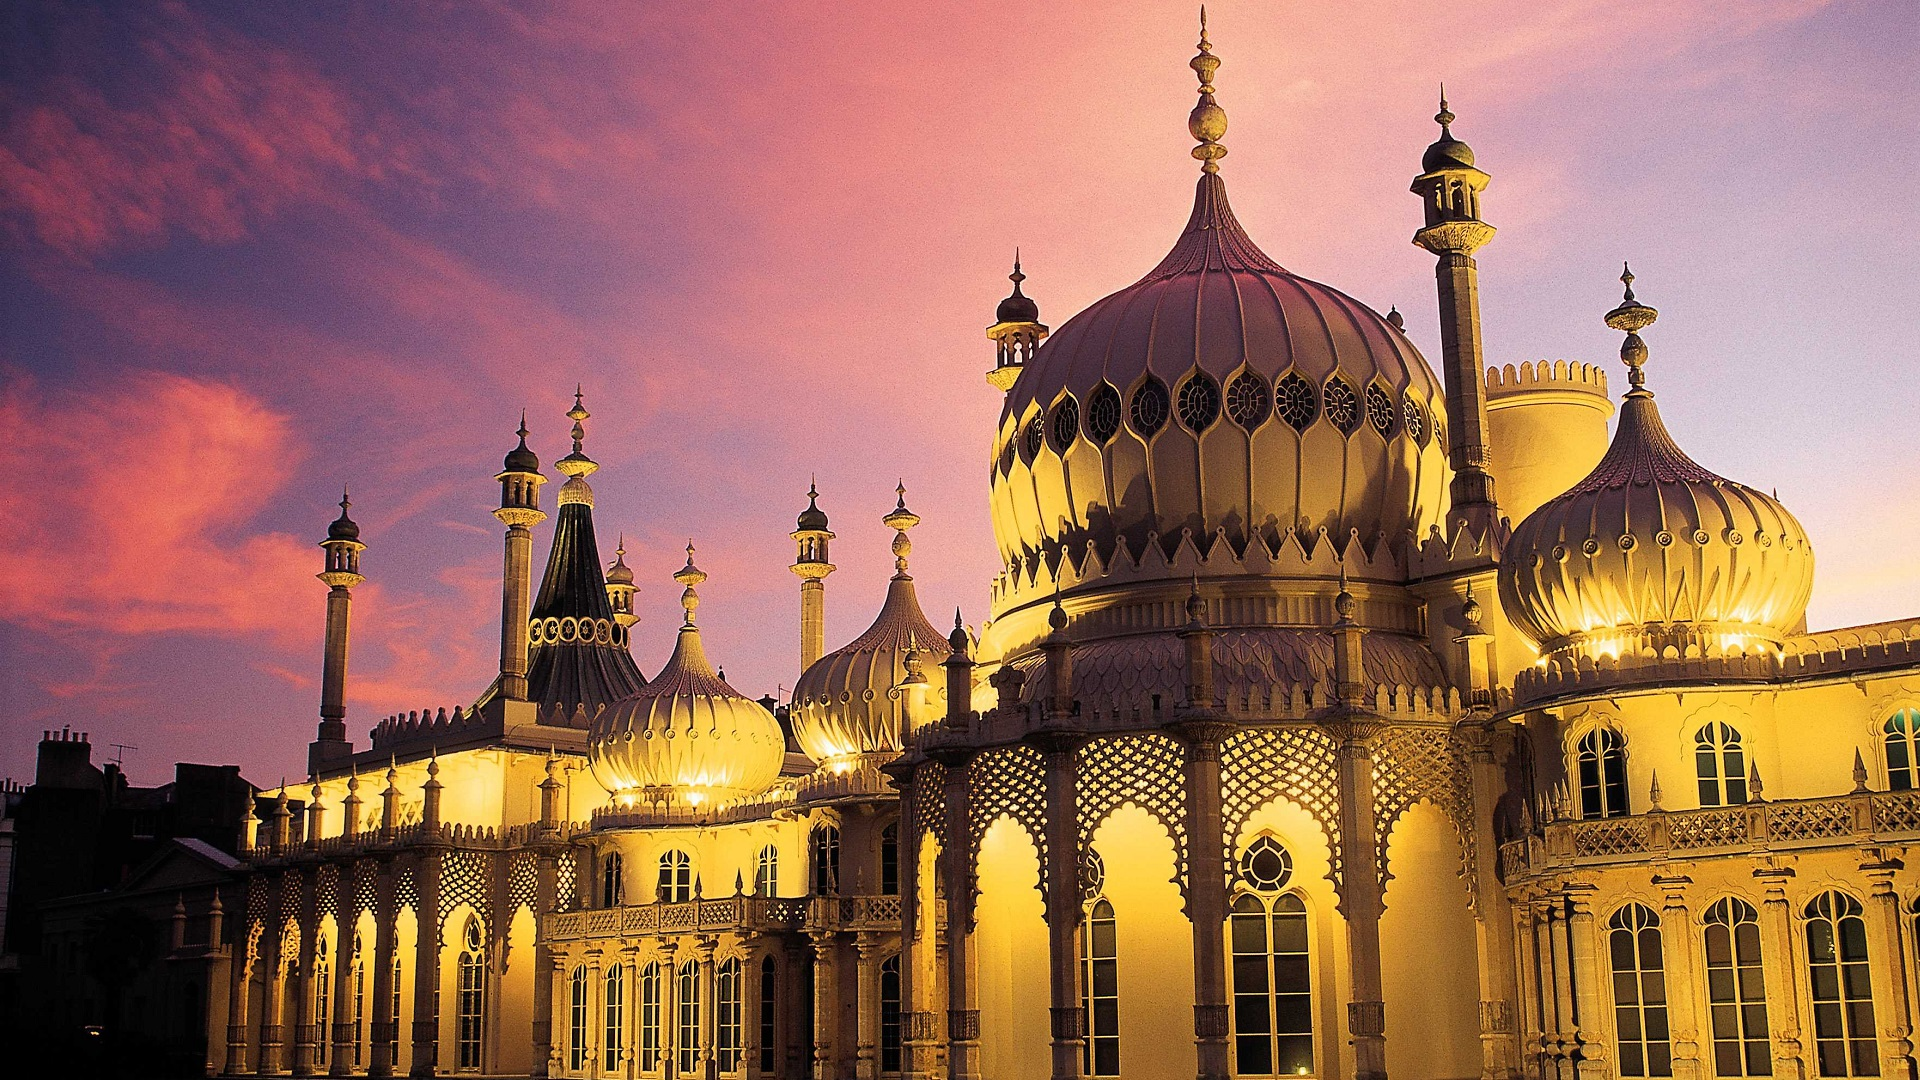 The Royal Pavilion palace in Brighton at sunset